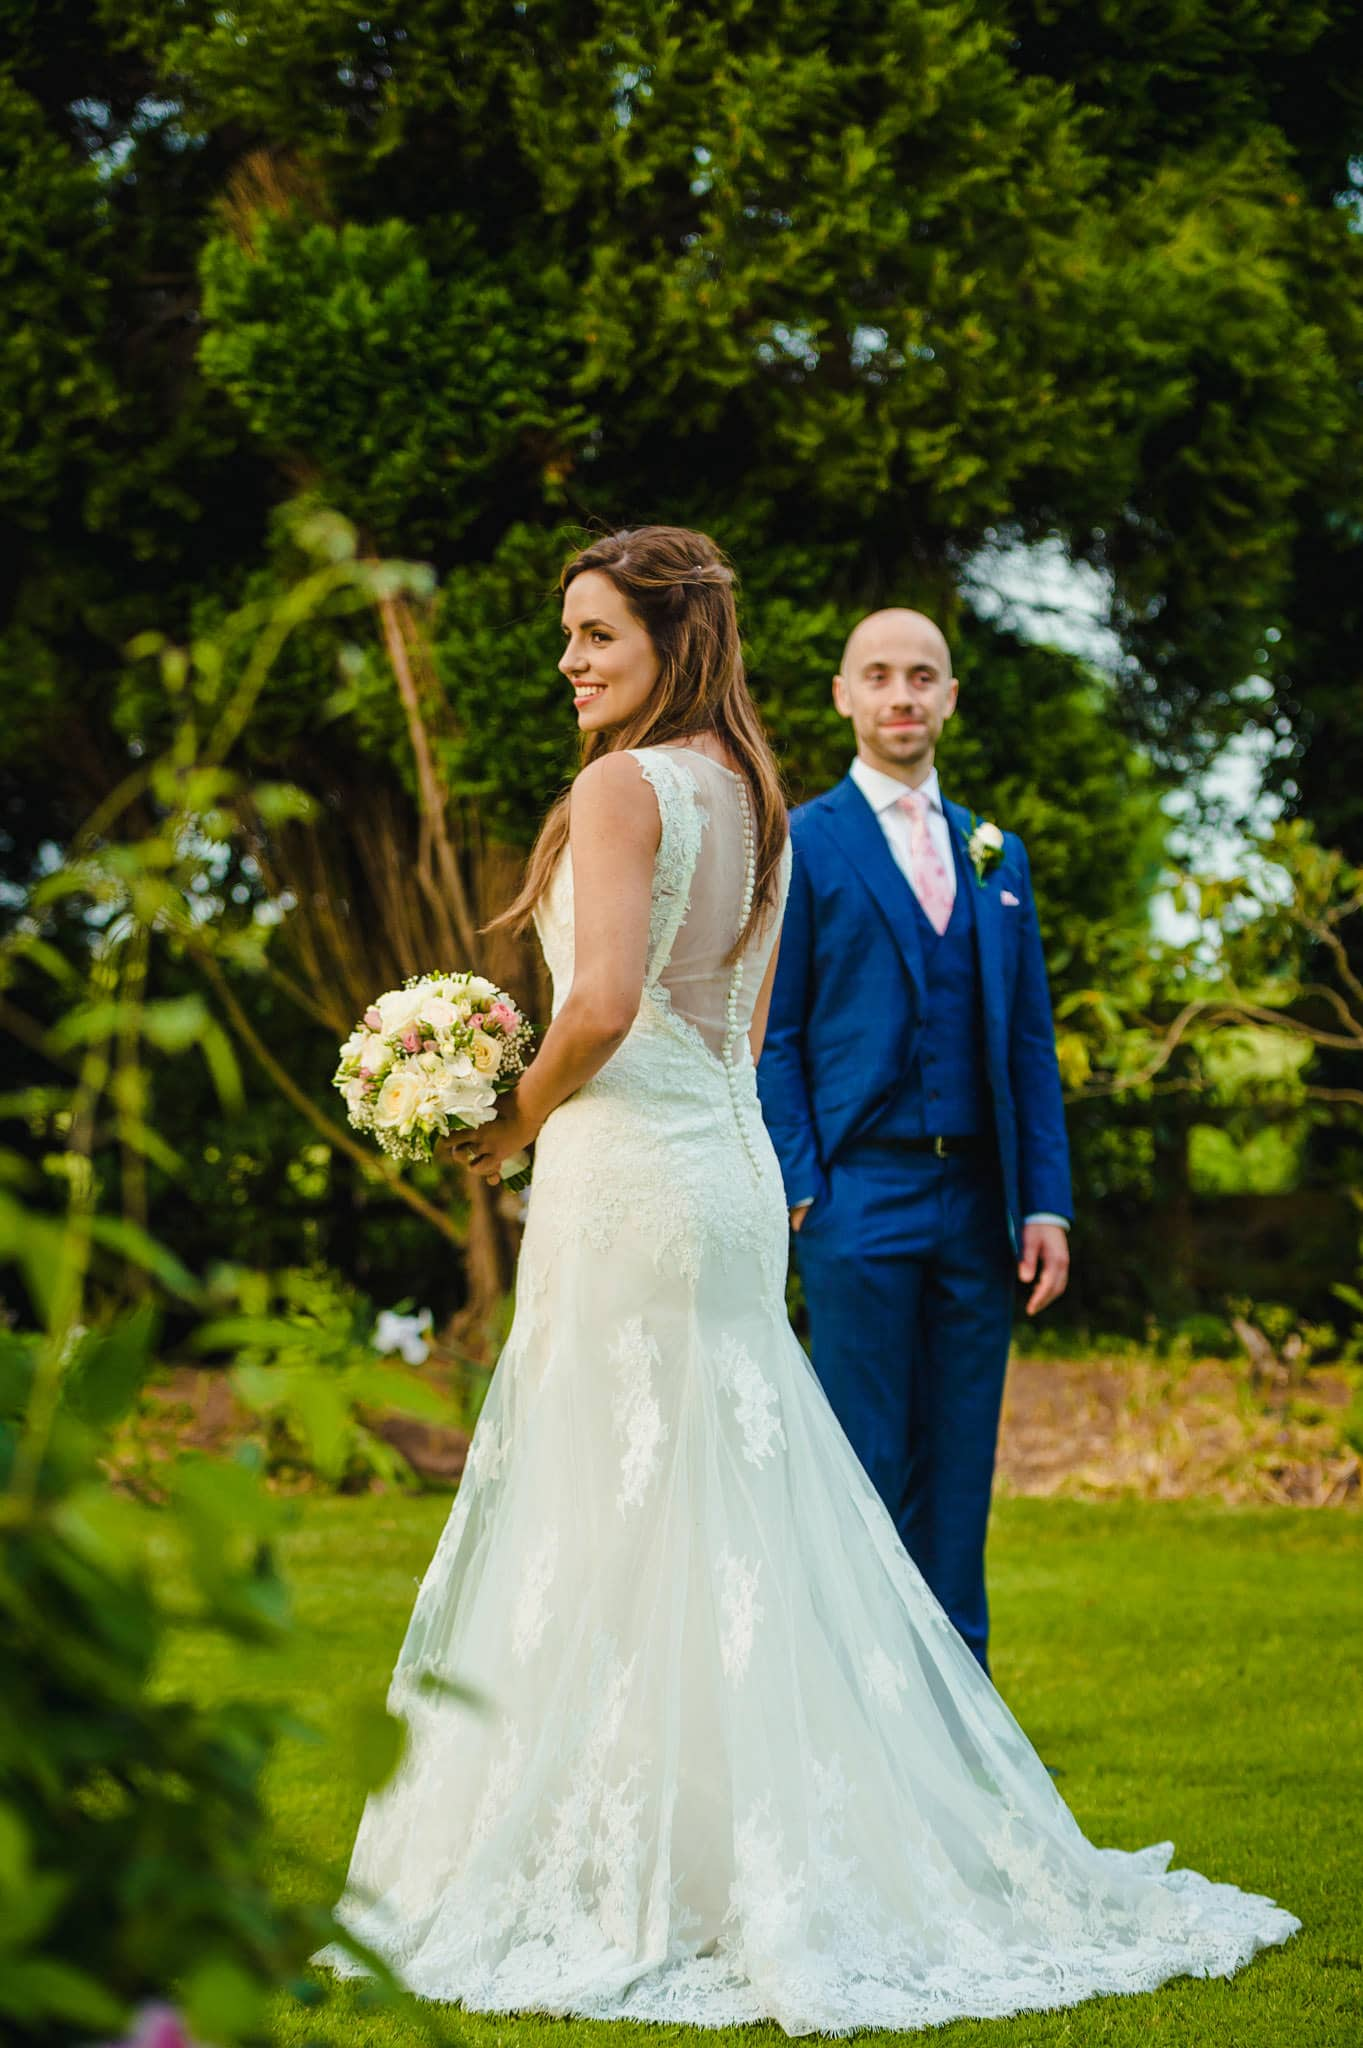 wedding at redhouse barn 193 - Wedding at Redhouse Barn in Stoke Prior, Worcestershire